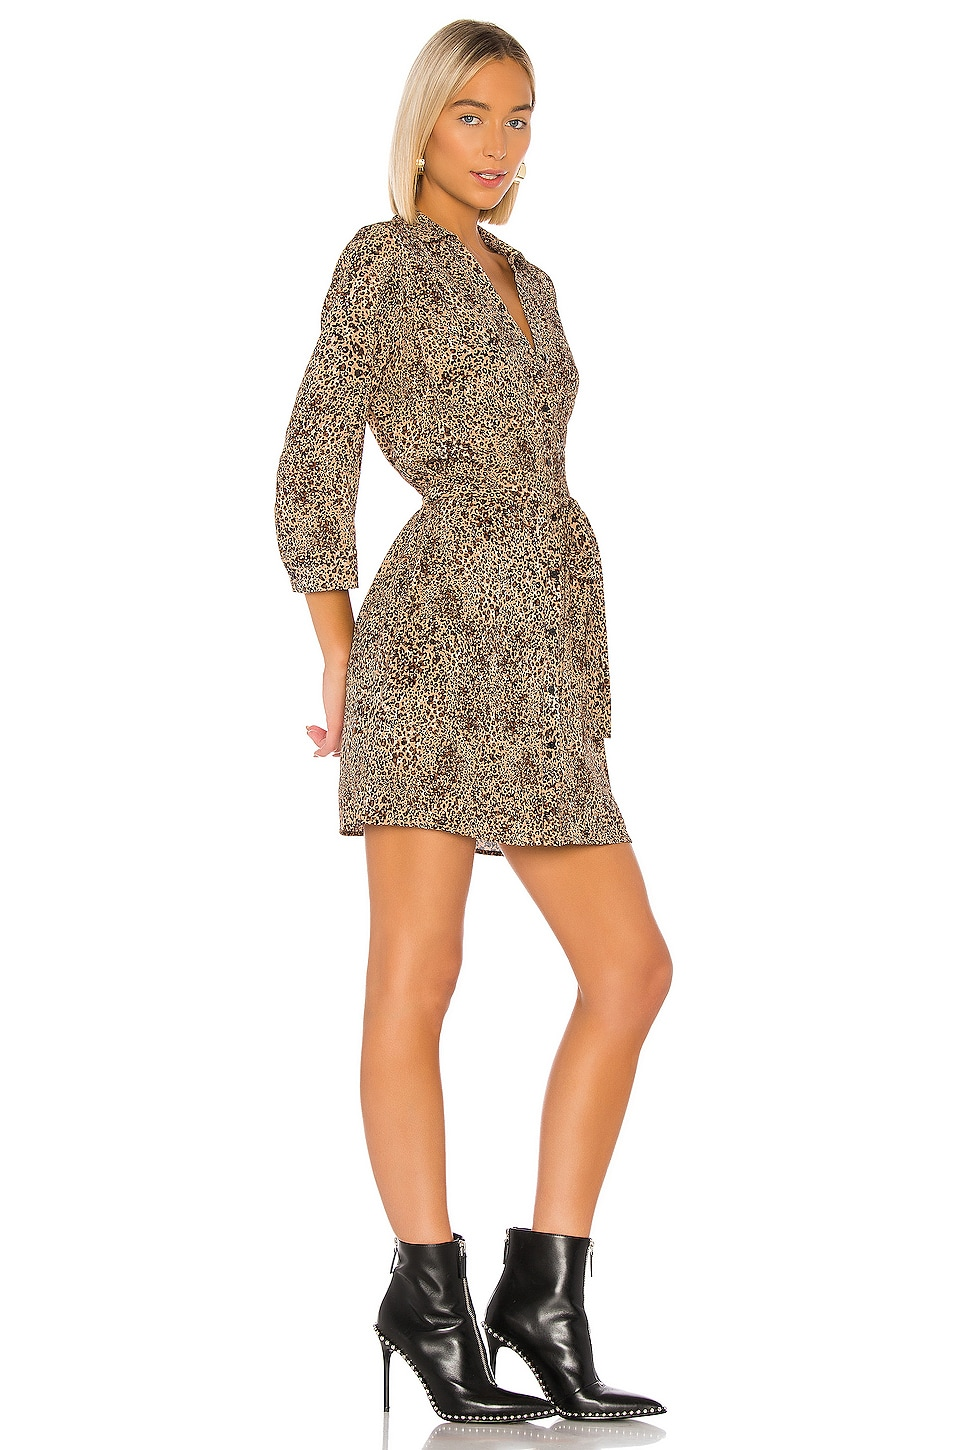 Leopard Muse Patch Pocket Shirt Dress, view 2, click to view large image.